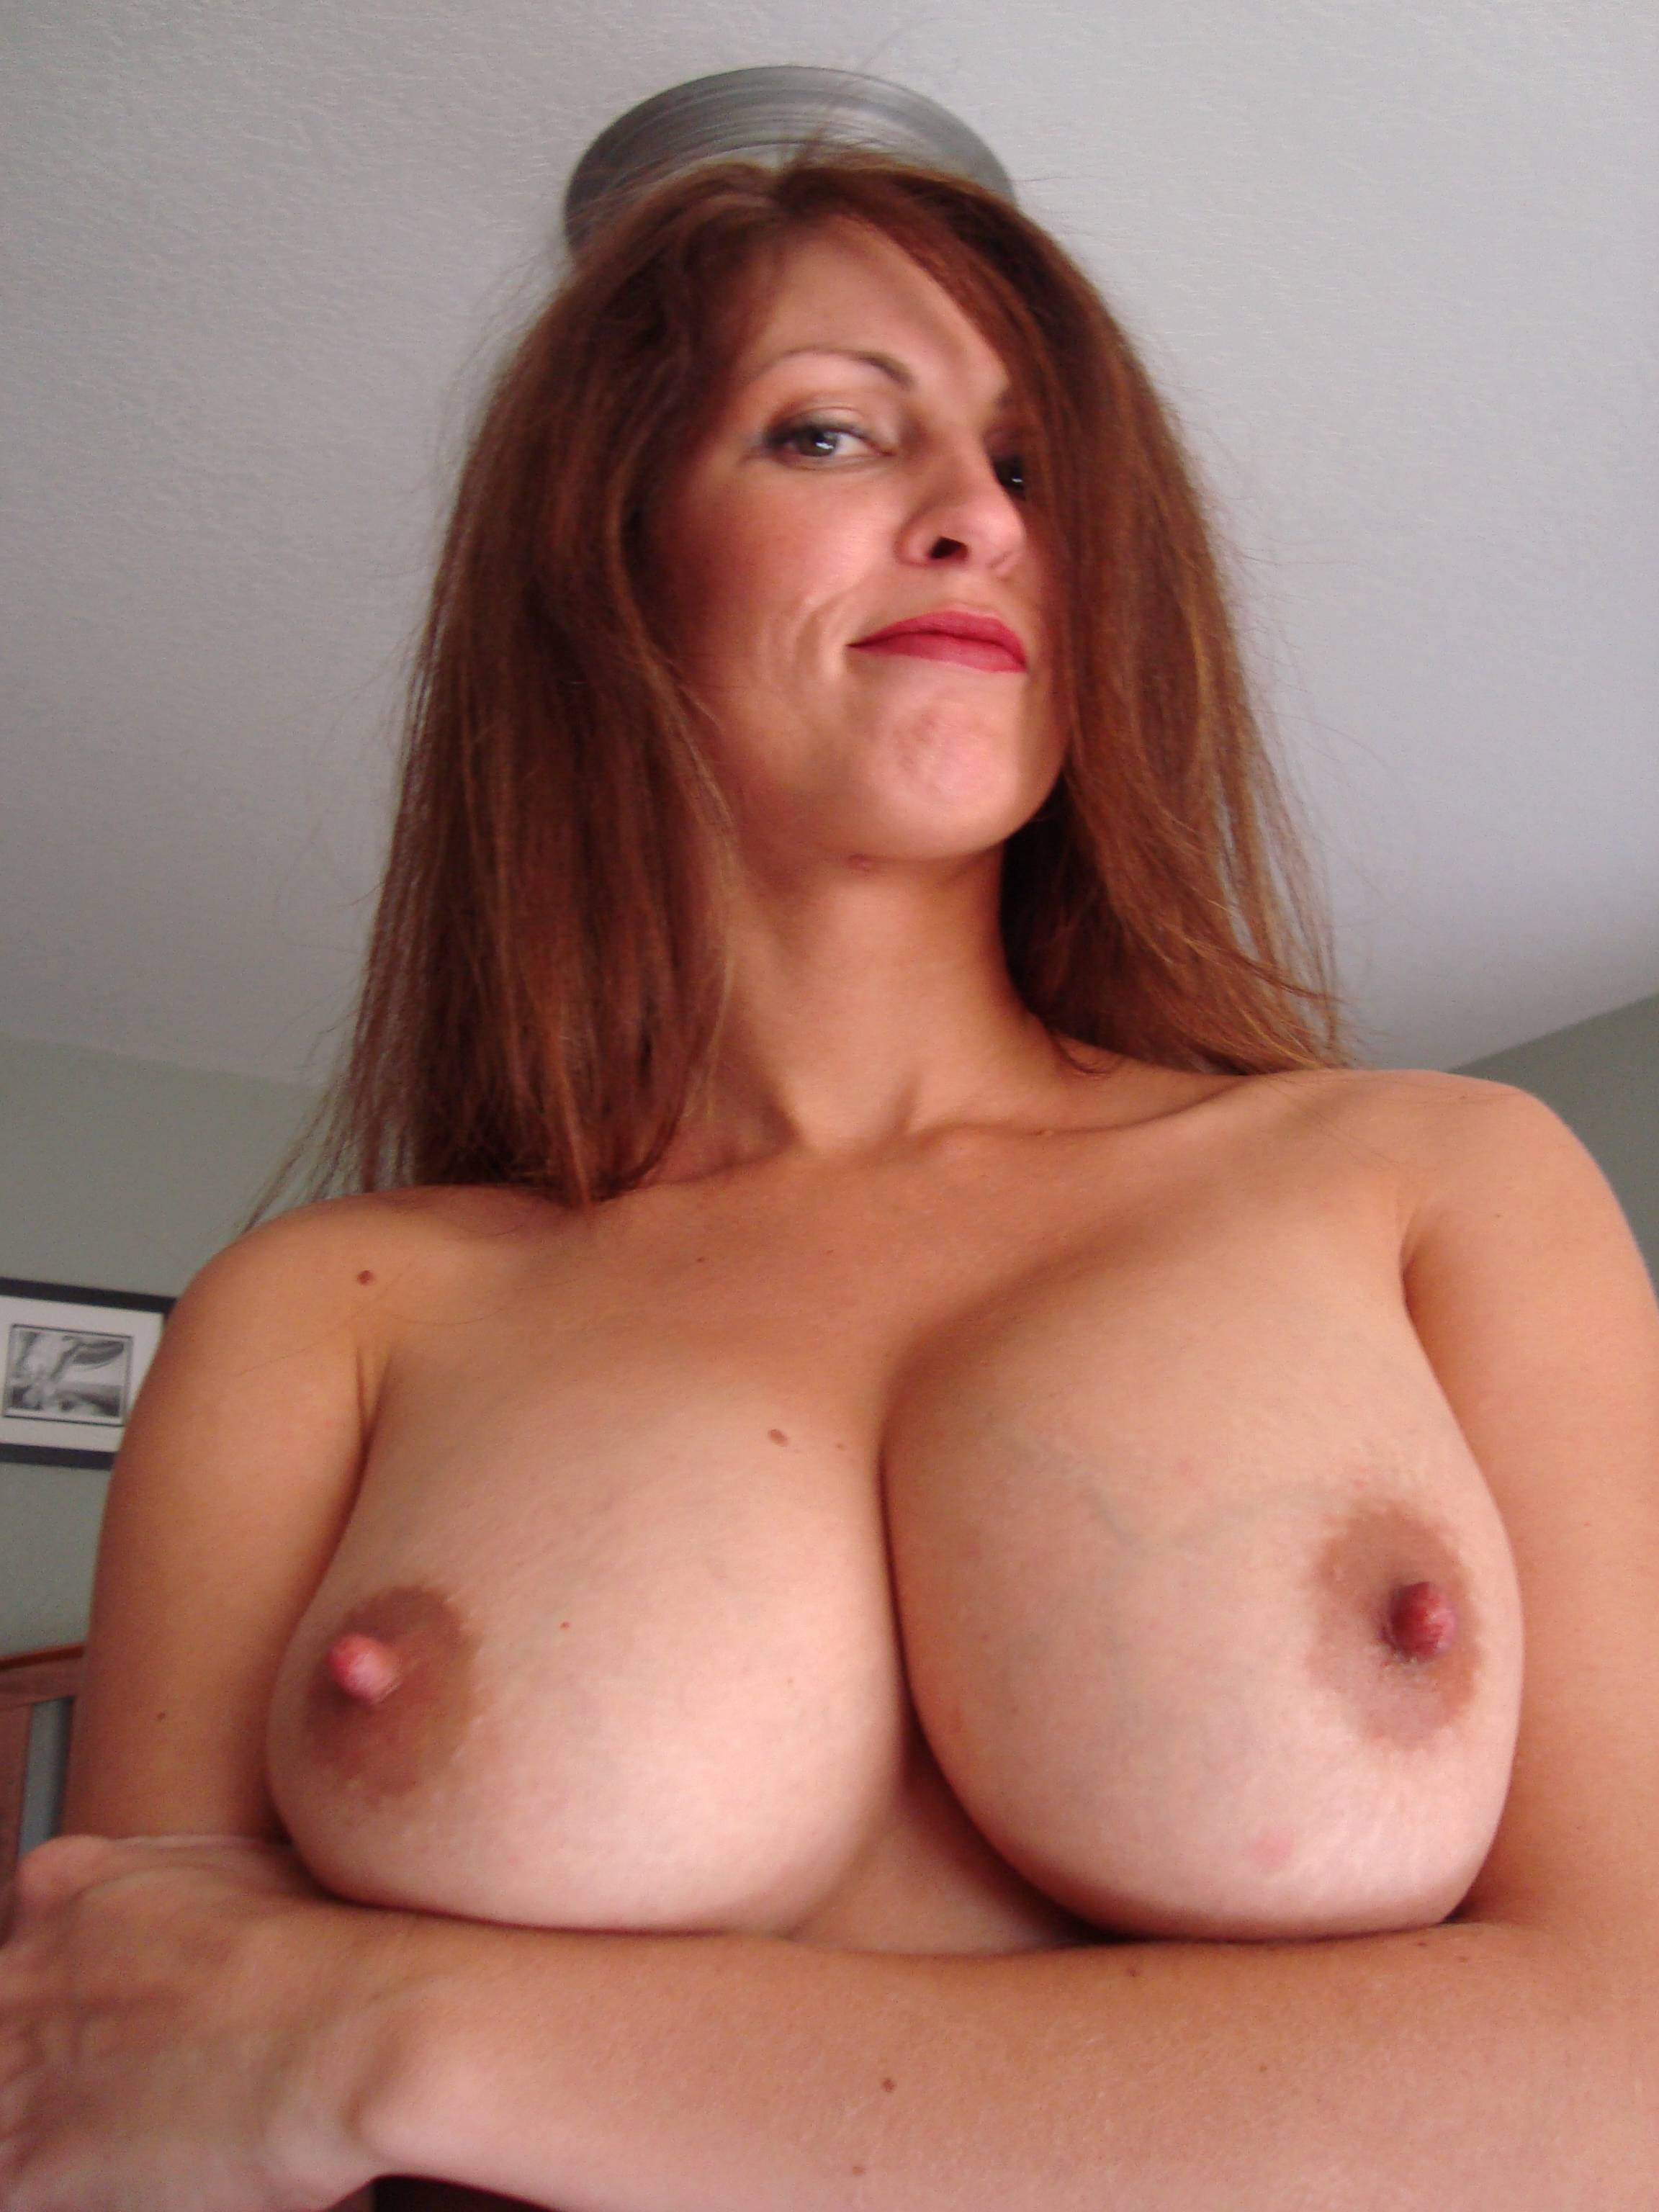 Boobs nude sexy